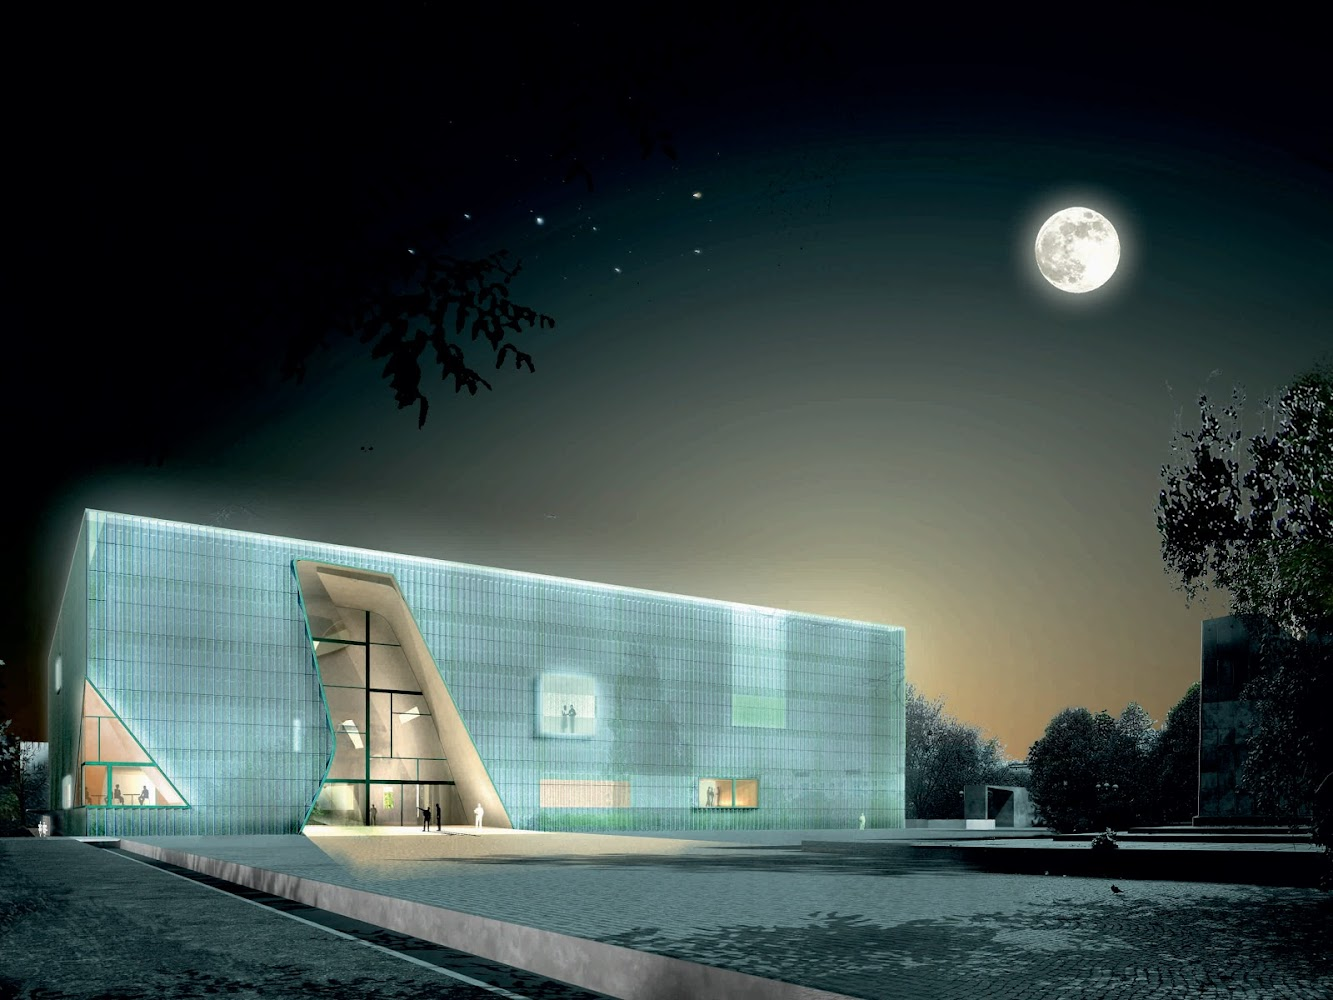 Varsavia, Polonia: Museum of the History of Polish Jews by Lahdelma & MahlamÄKI